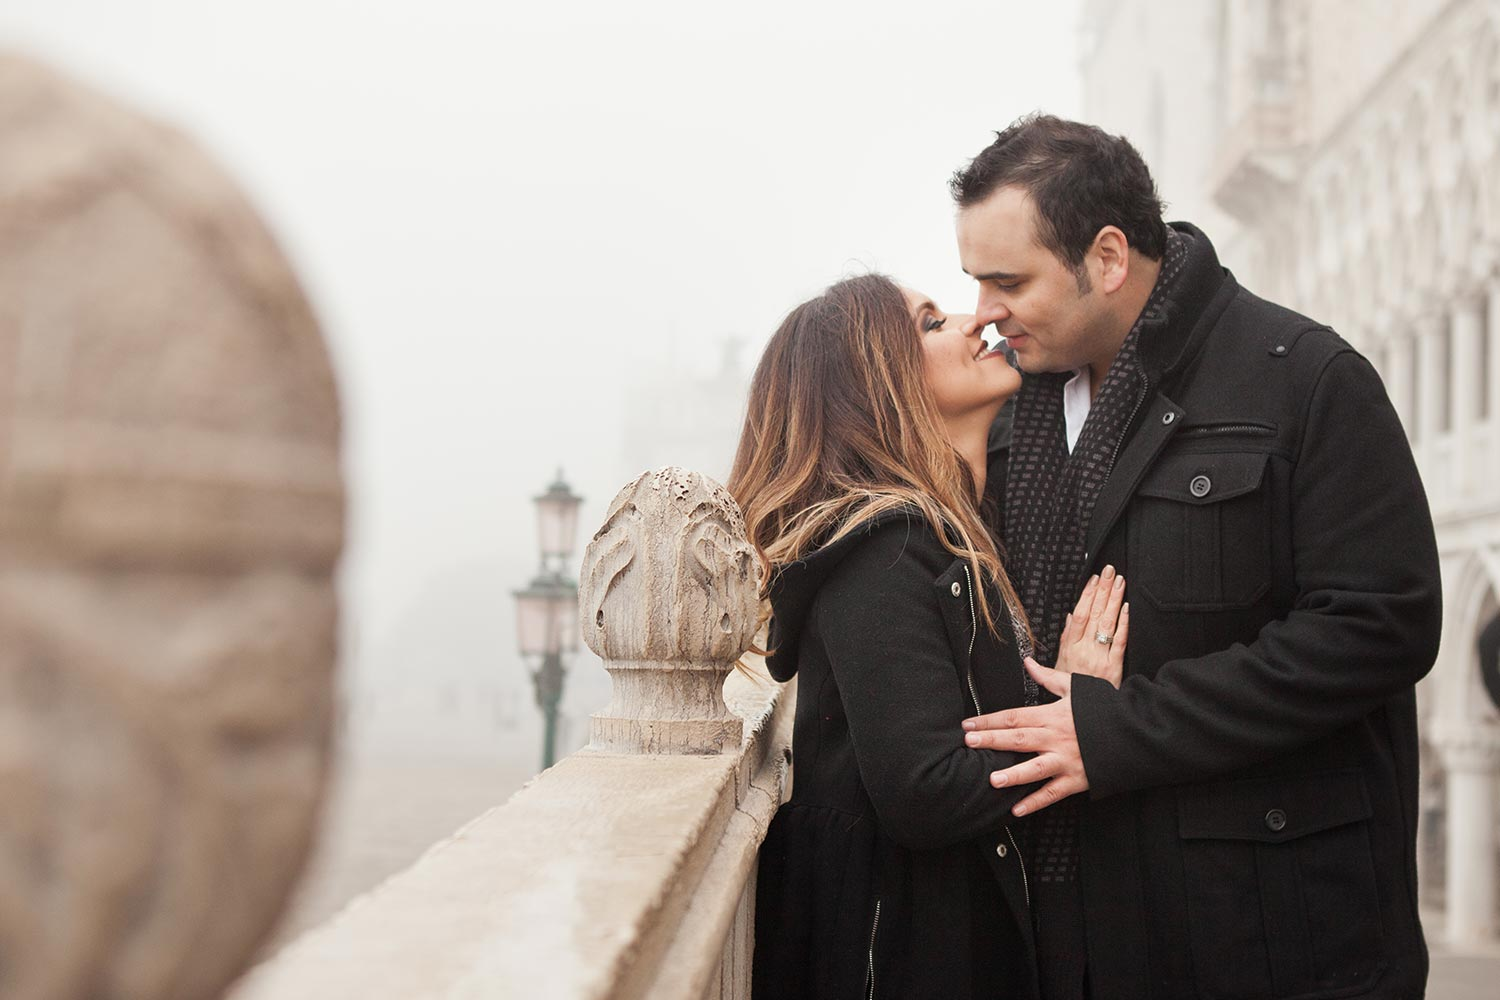 Leticia and Hector in a foggy Venice